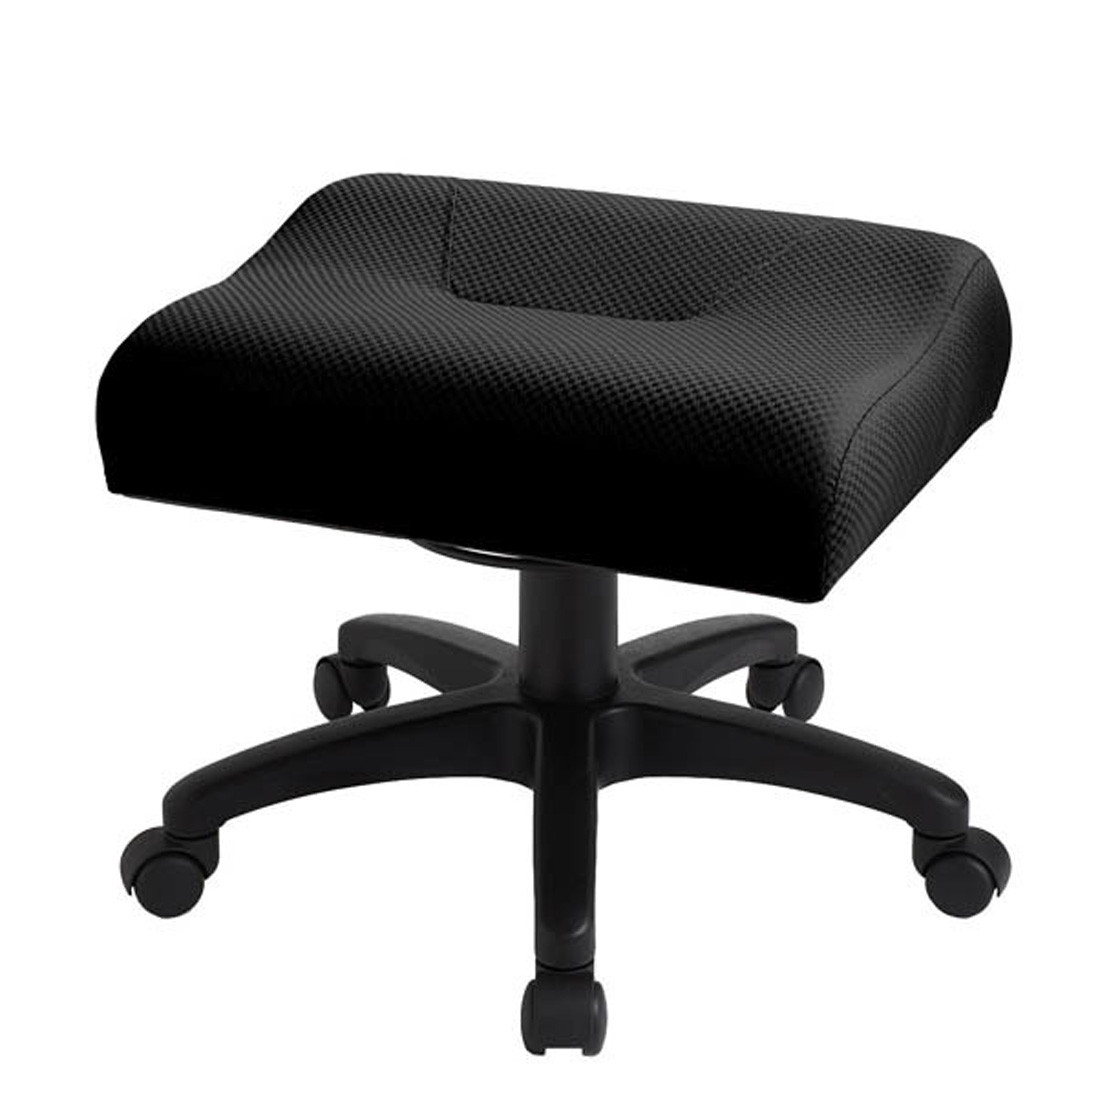 Padded Stool Ergocentric Adjustable Height Leg Rest Padded Foot Stool